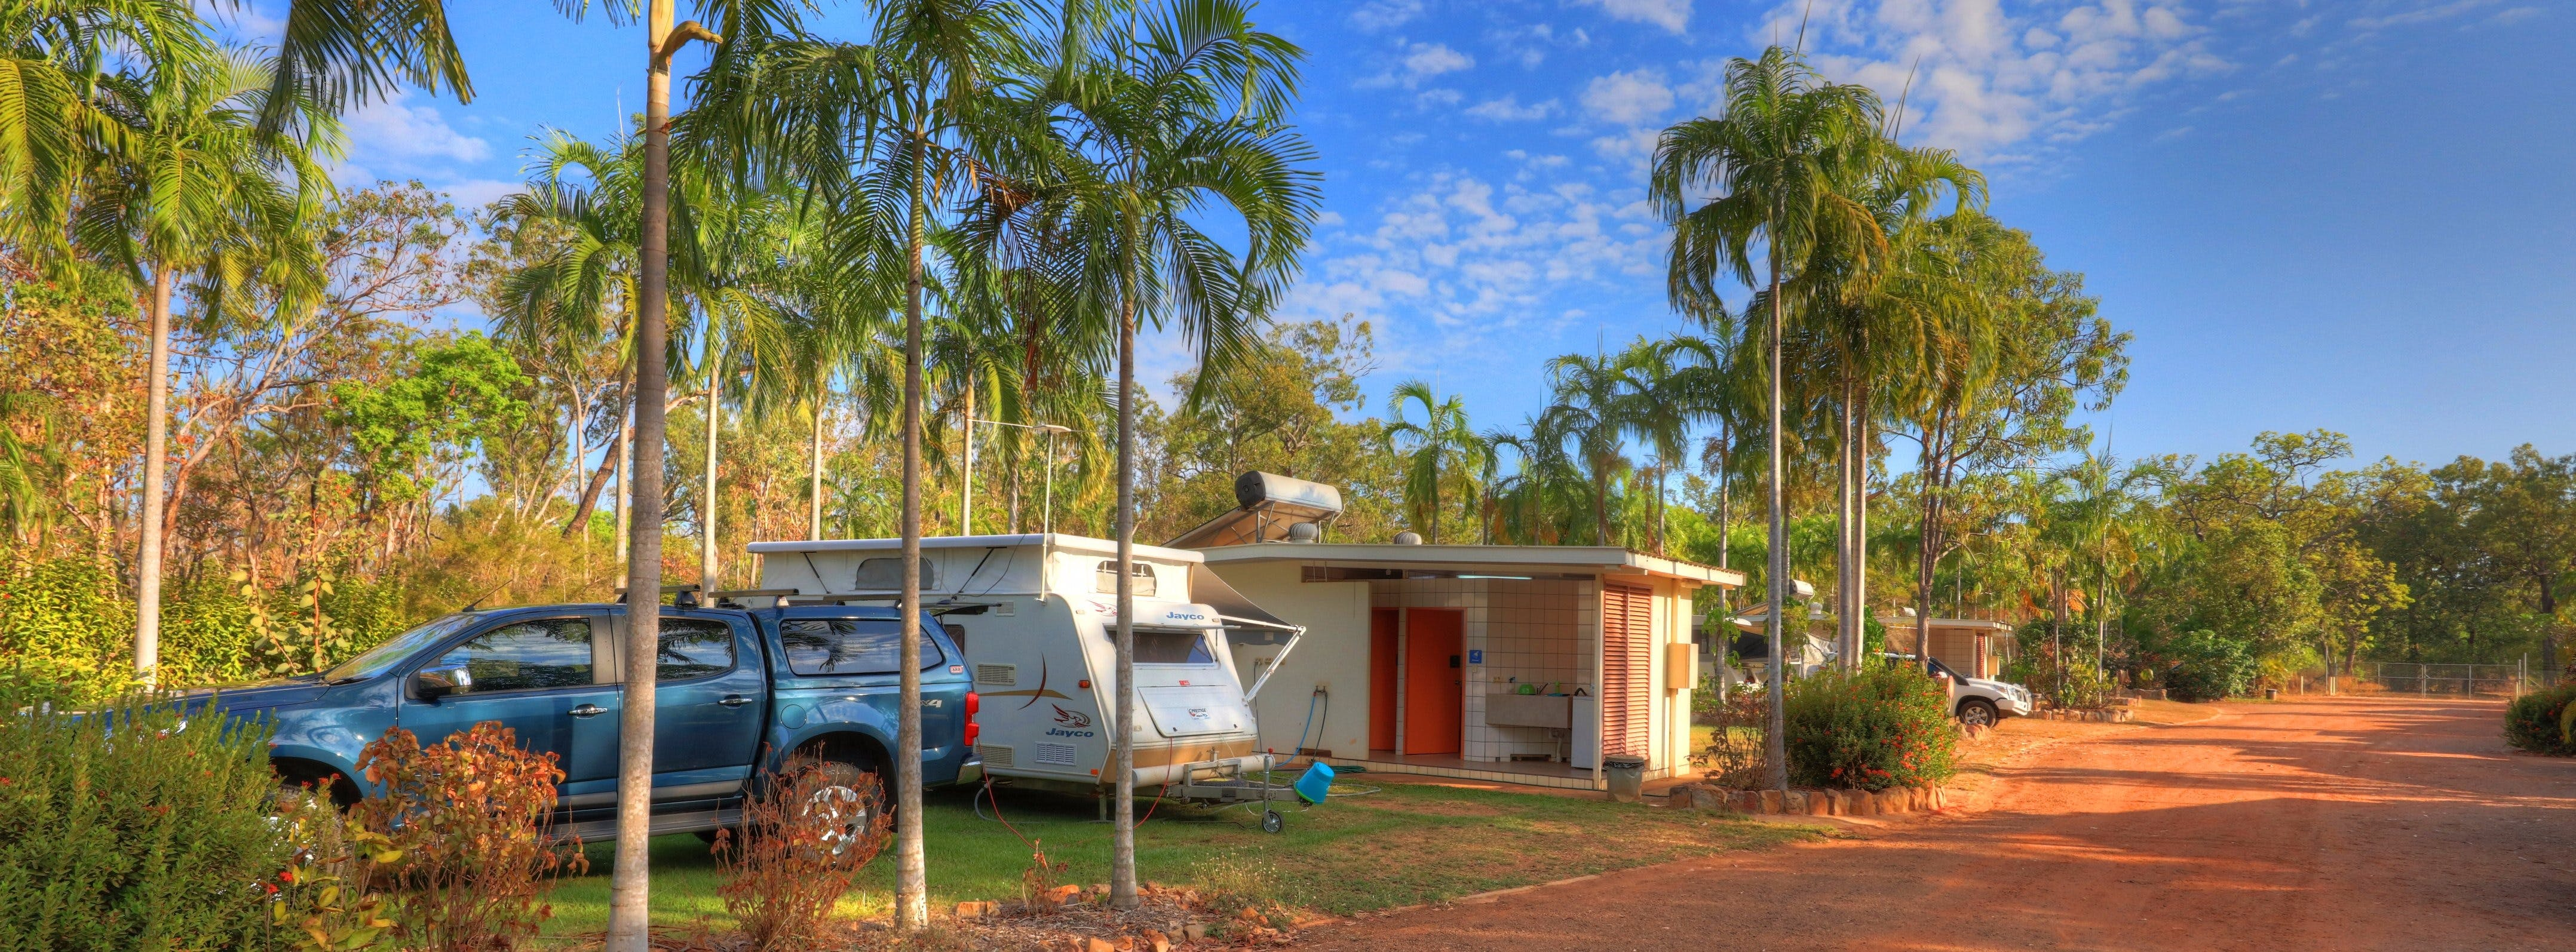 Batchelor Holiday Park - Geraldton Accommodation